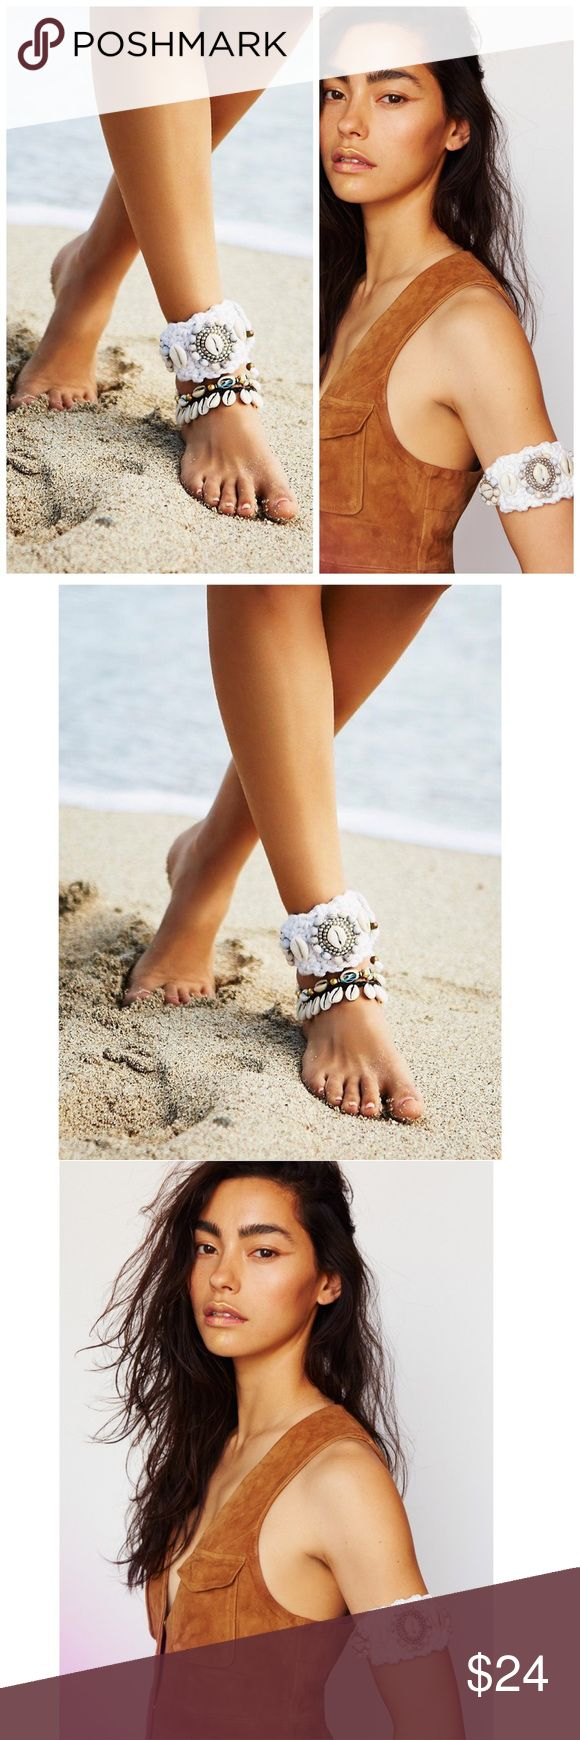 """FREE PEOPLE WHITE SANDS CROCHET ARMBAND ANKLET NEW FREE PEOPLE White Sands Crochet Shell Armband/Anklet. $30 retail price new without tag. DETAILS: Nothing says day at the beach like this convertible macrame piece. Featuring shell detailing and metal and wooden accents, wear as an armband or anklet. Adjustable tie closure.  Shell Silver Metal Wooden Beads Cotton Import Length: 17.0"""" = 43.18 cm Free People Jewelry Bracelets"""